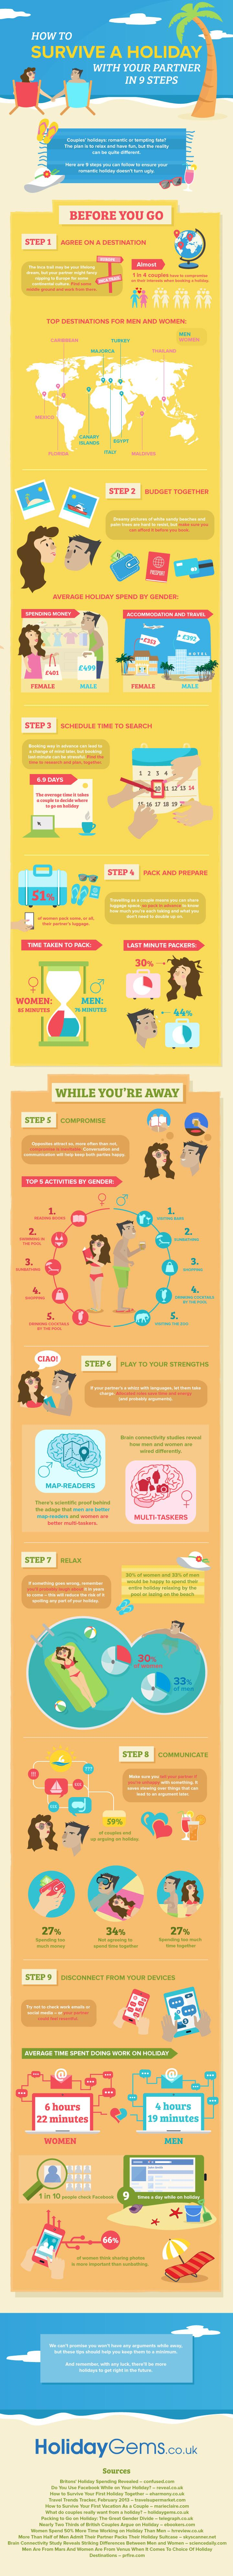 Infographic_SurviveHolidayWithPartner_HolidayGems_SEO